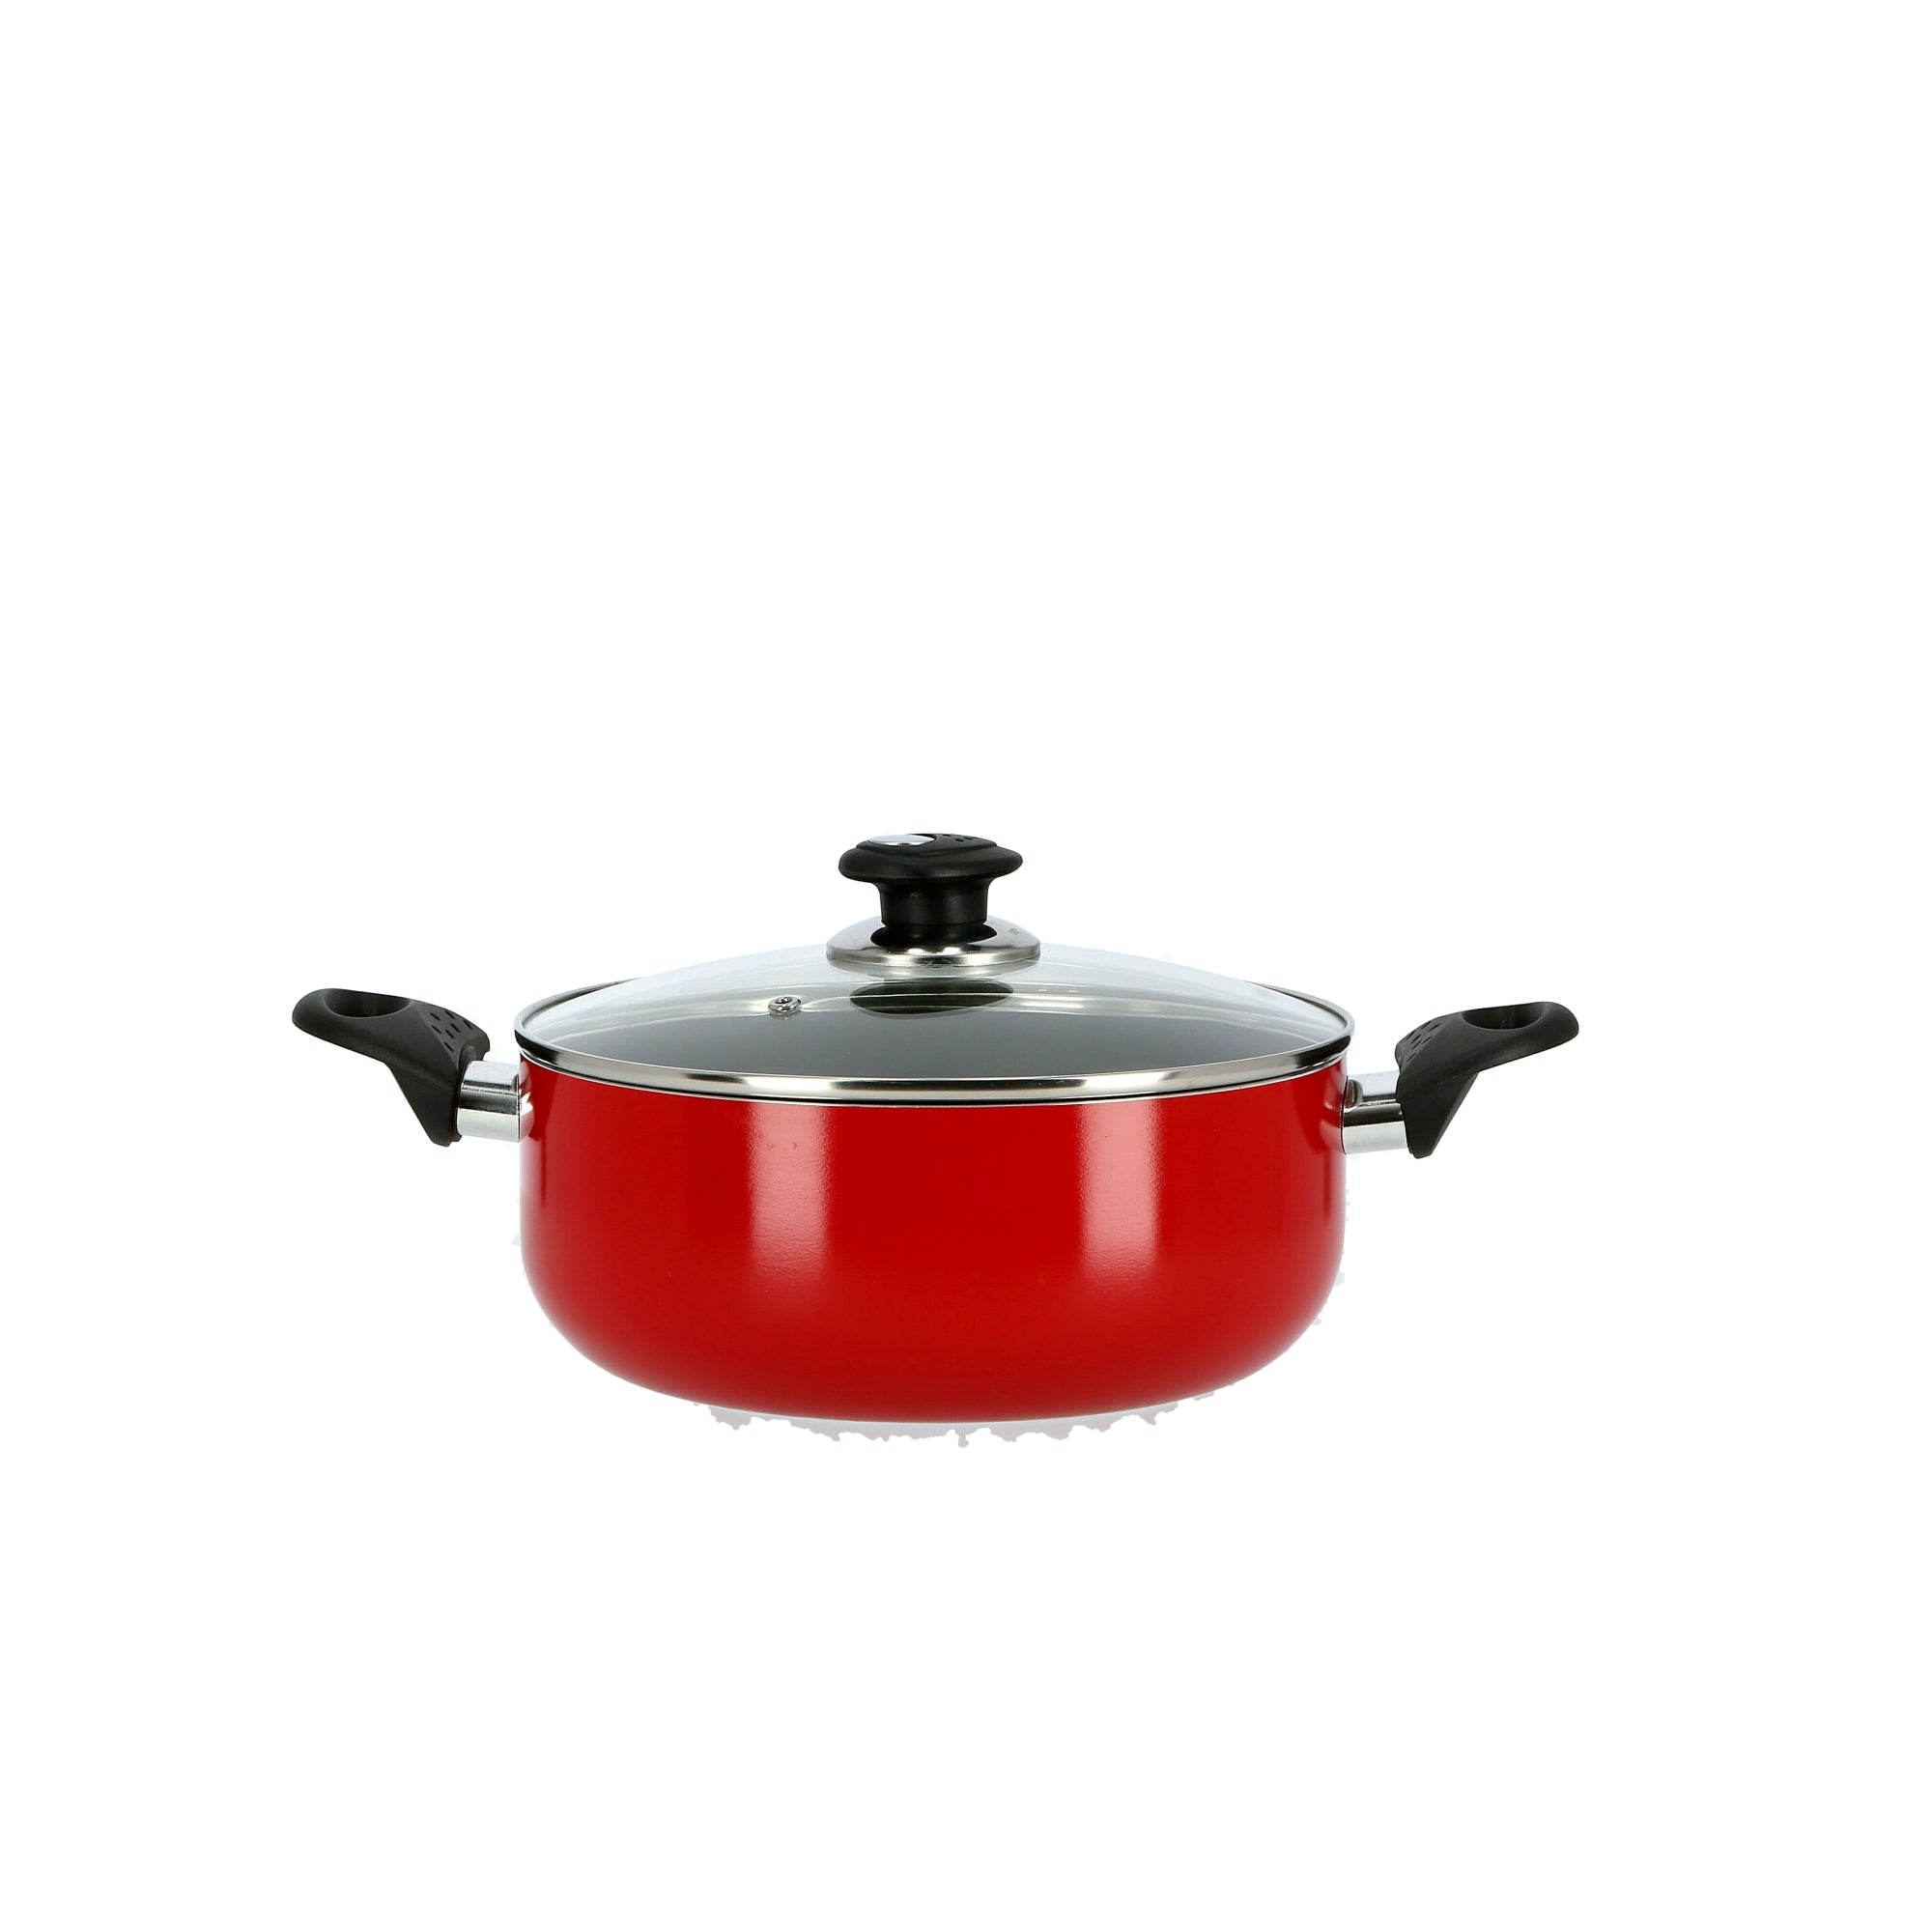 Royal ford RF6442   Non-Stick Ceramic Casserole with Glass Lid 28 cm- Durable Non-stick Coating, High-Quality Construction with Comfortable Resistant Handle | Non-Stick Dish for Gas, Induction & Ceramic Hobs